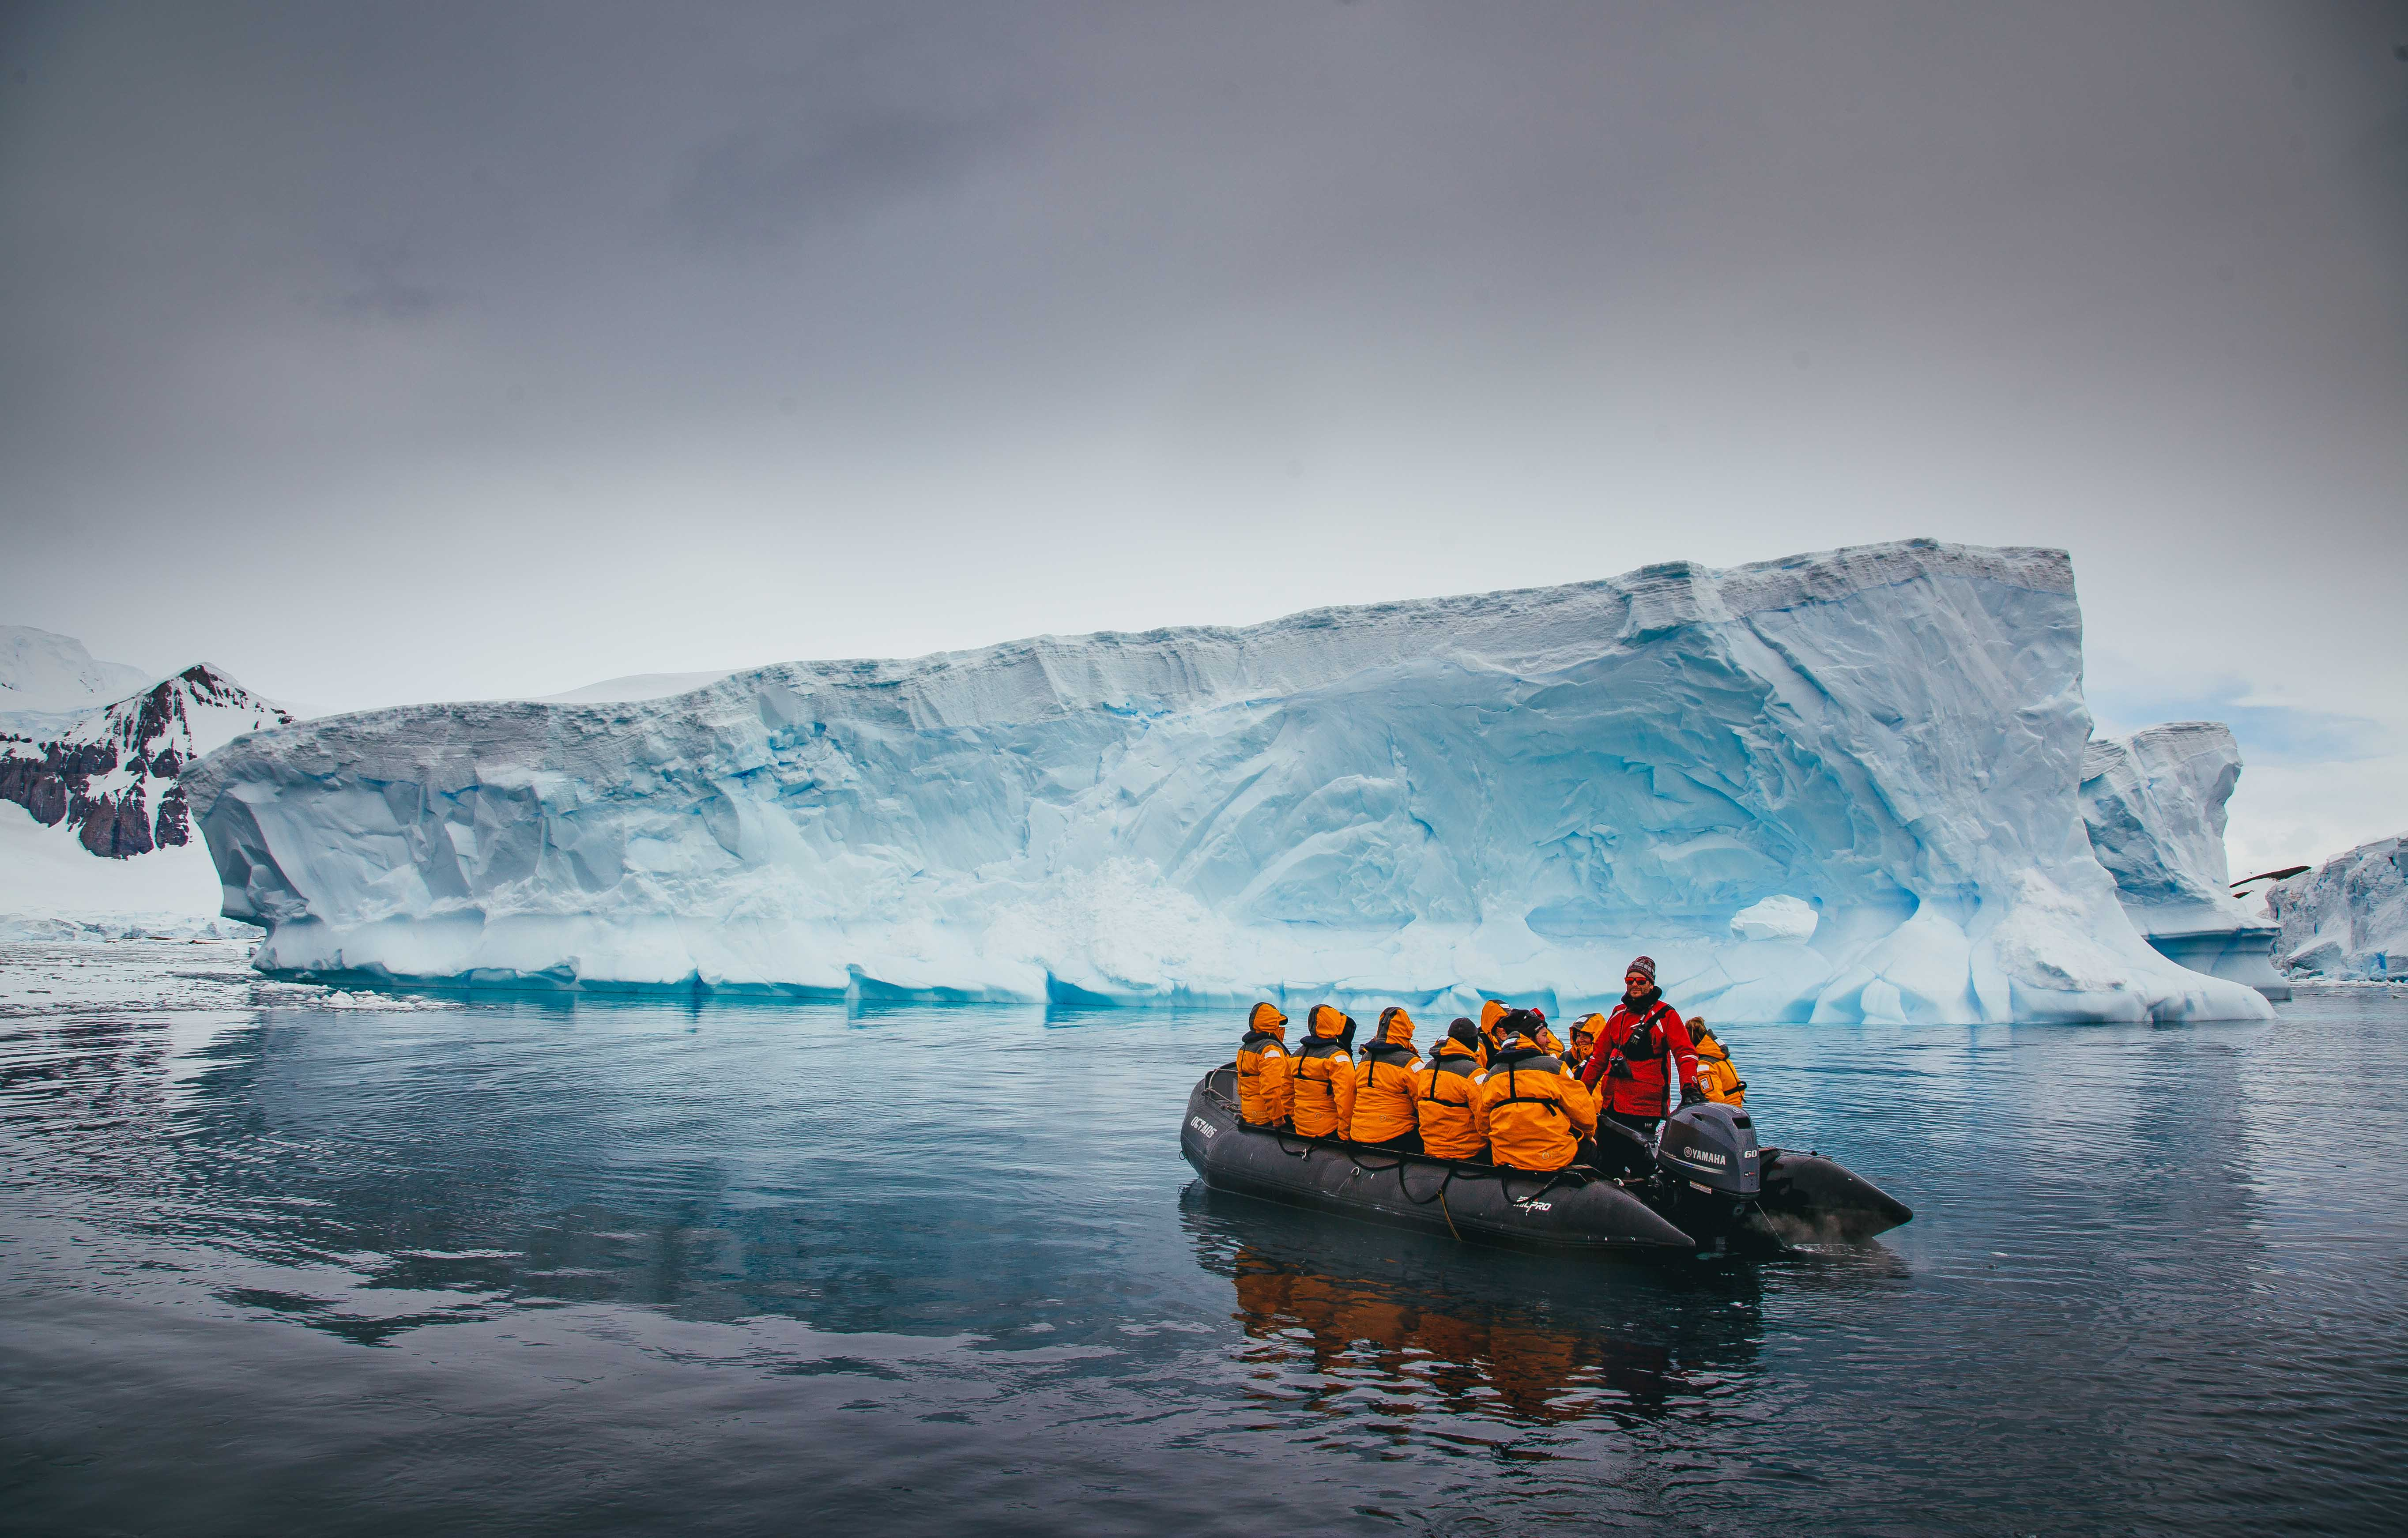 passengers cruise next to iceberg in Antarctica